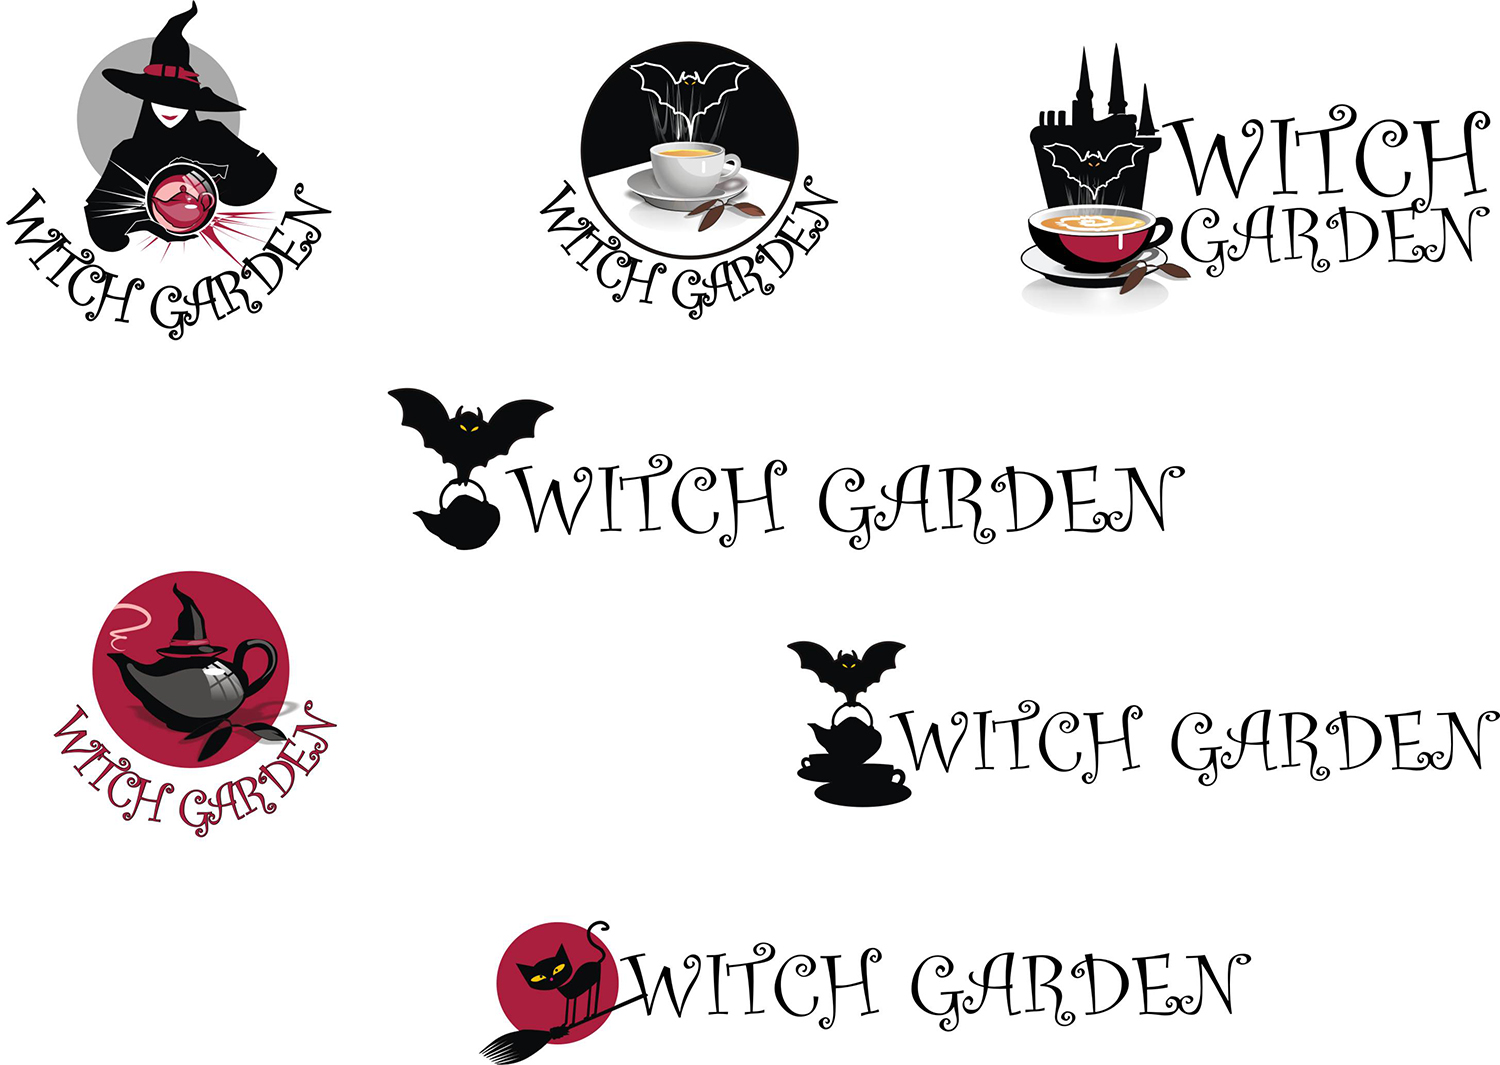 witch-garden-logo